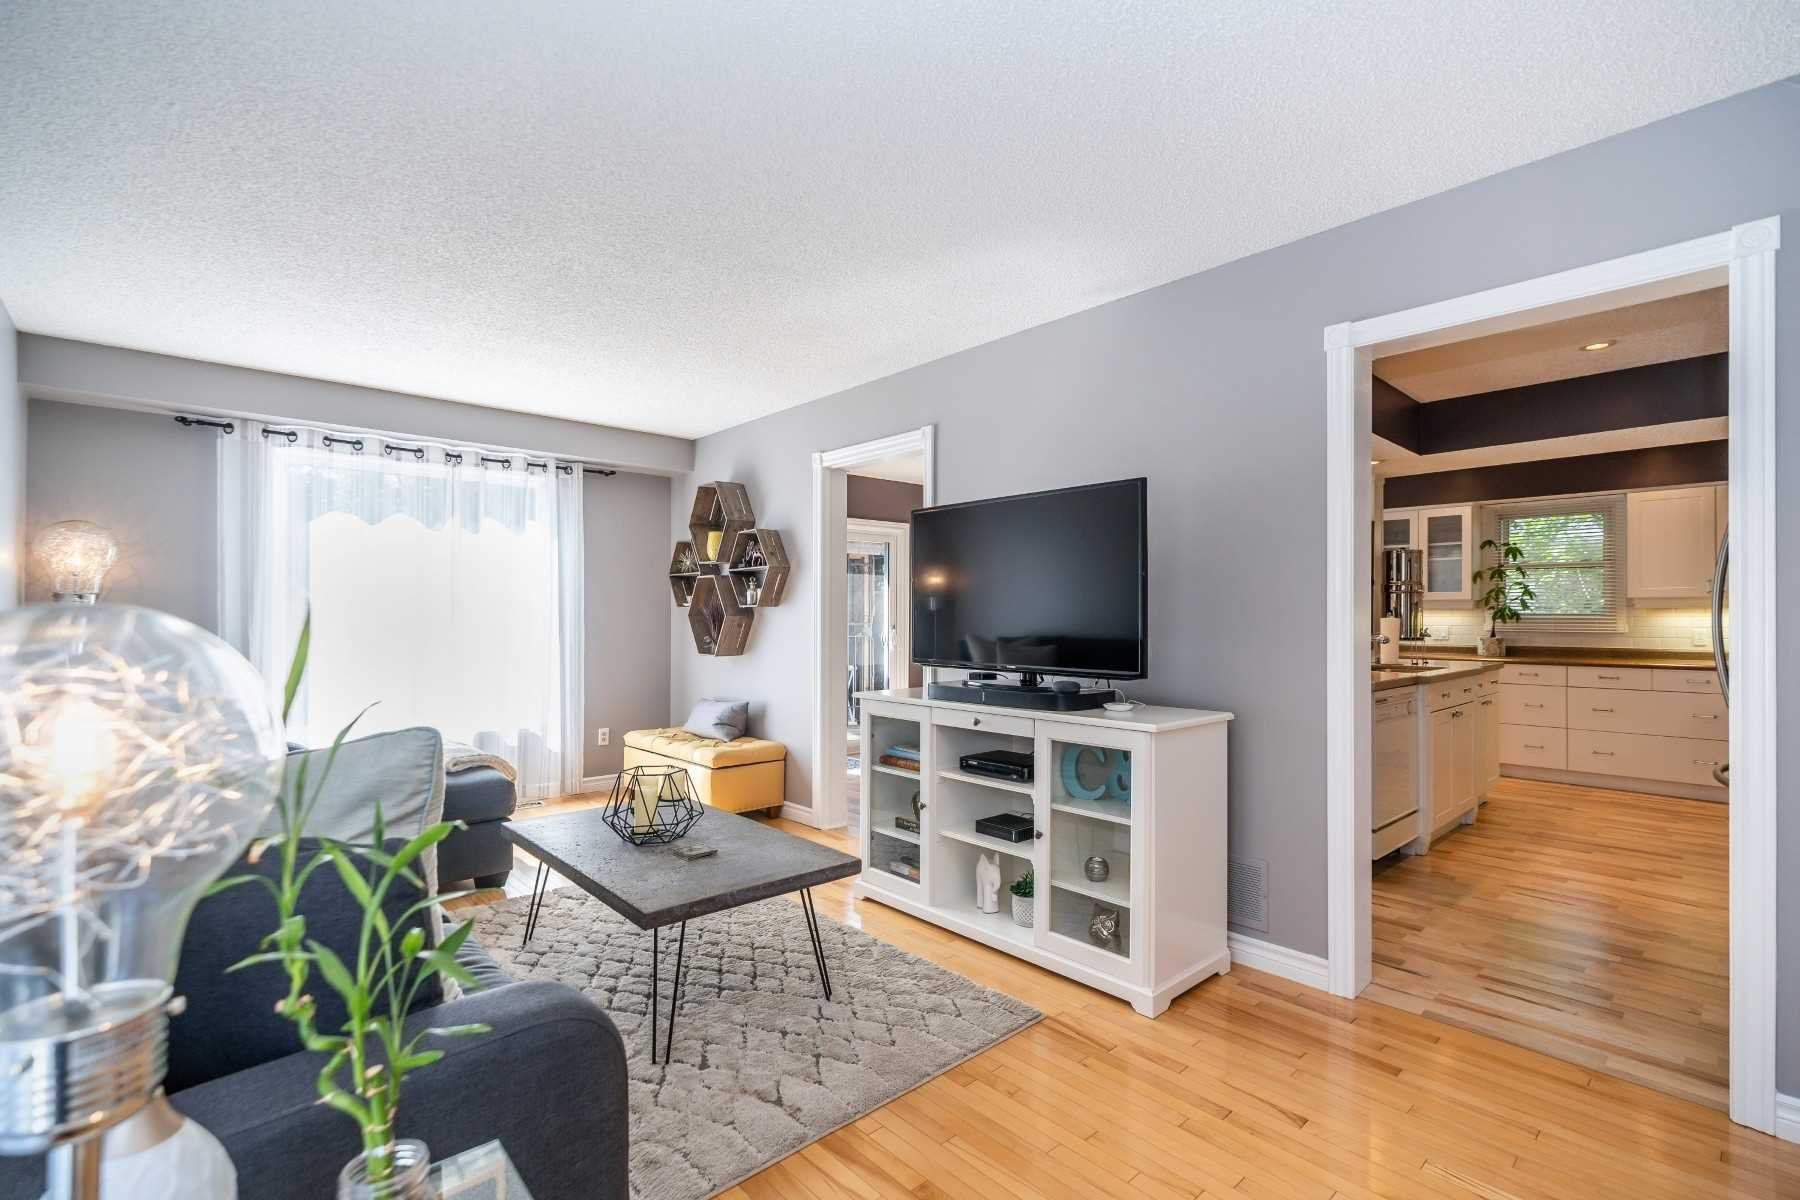 Photo 7: Photos: 1153 Snowberry Court in Oshawa: Pinecrest House (2-Storey) for sale : MLS®# E4794796